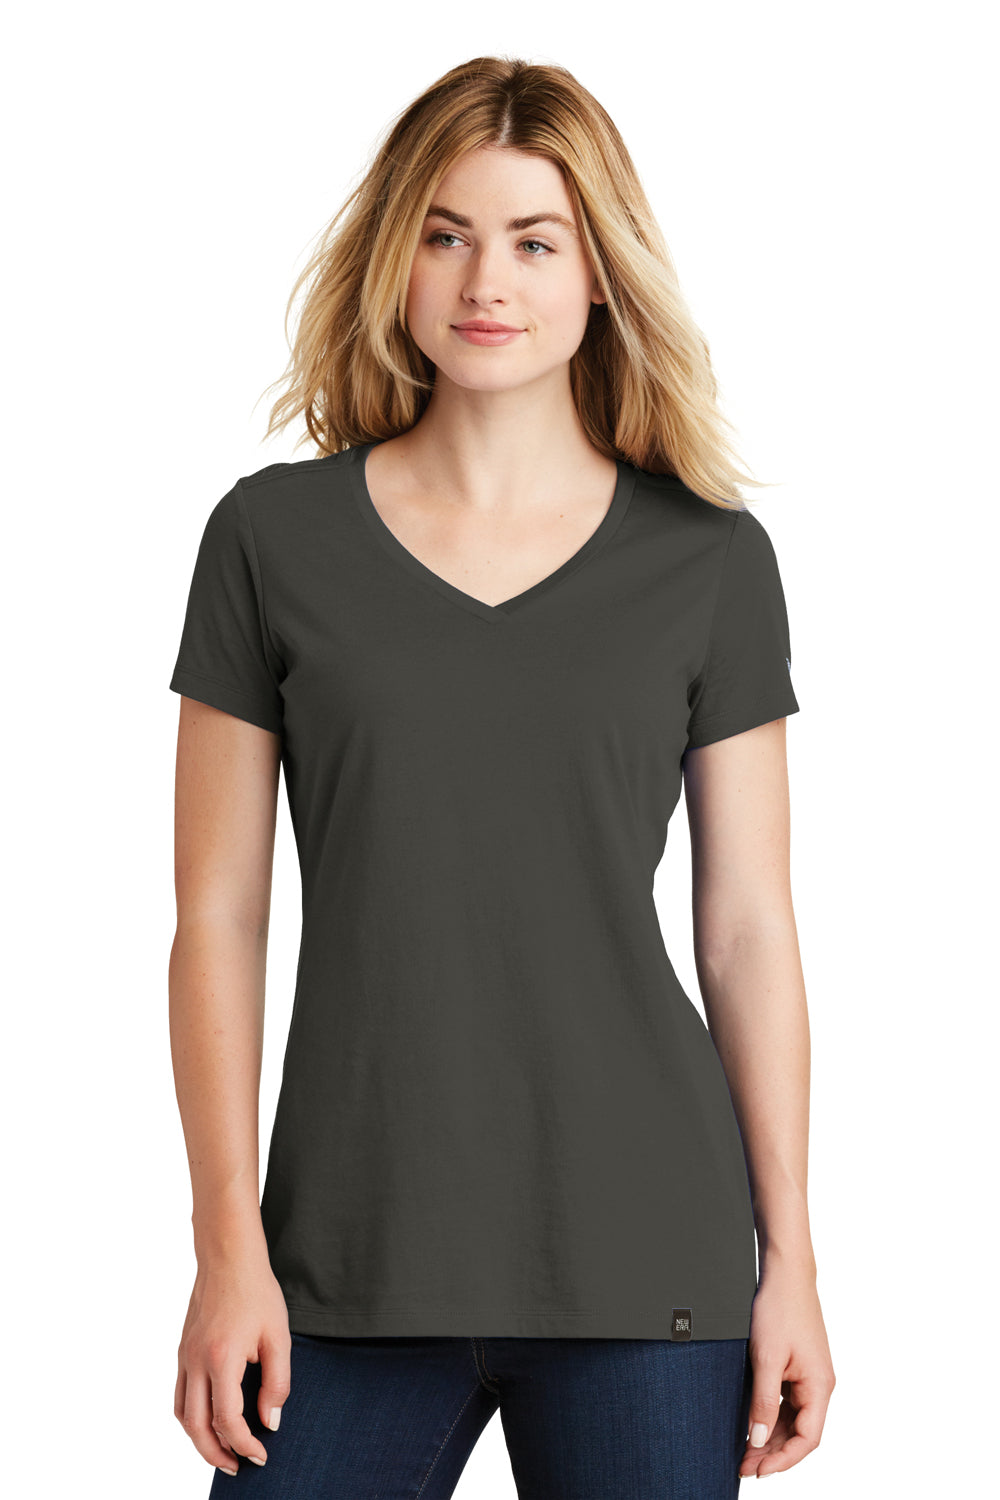 New Era LNEA101 Womens Heritage Short Sleeve V-Neck T-Shirt Graphite Grey Front